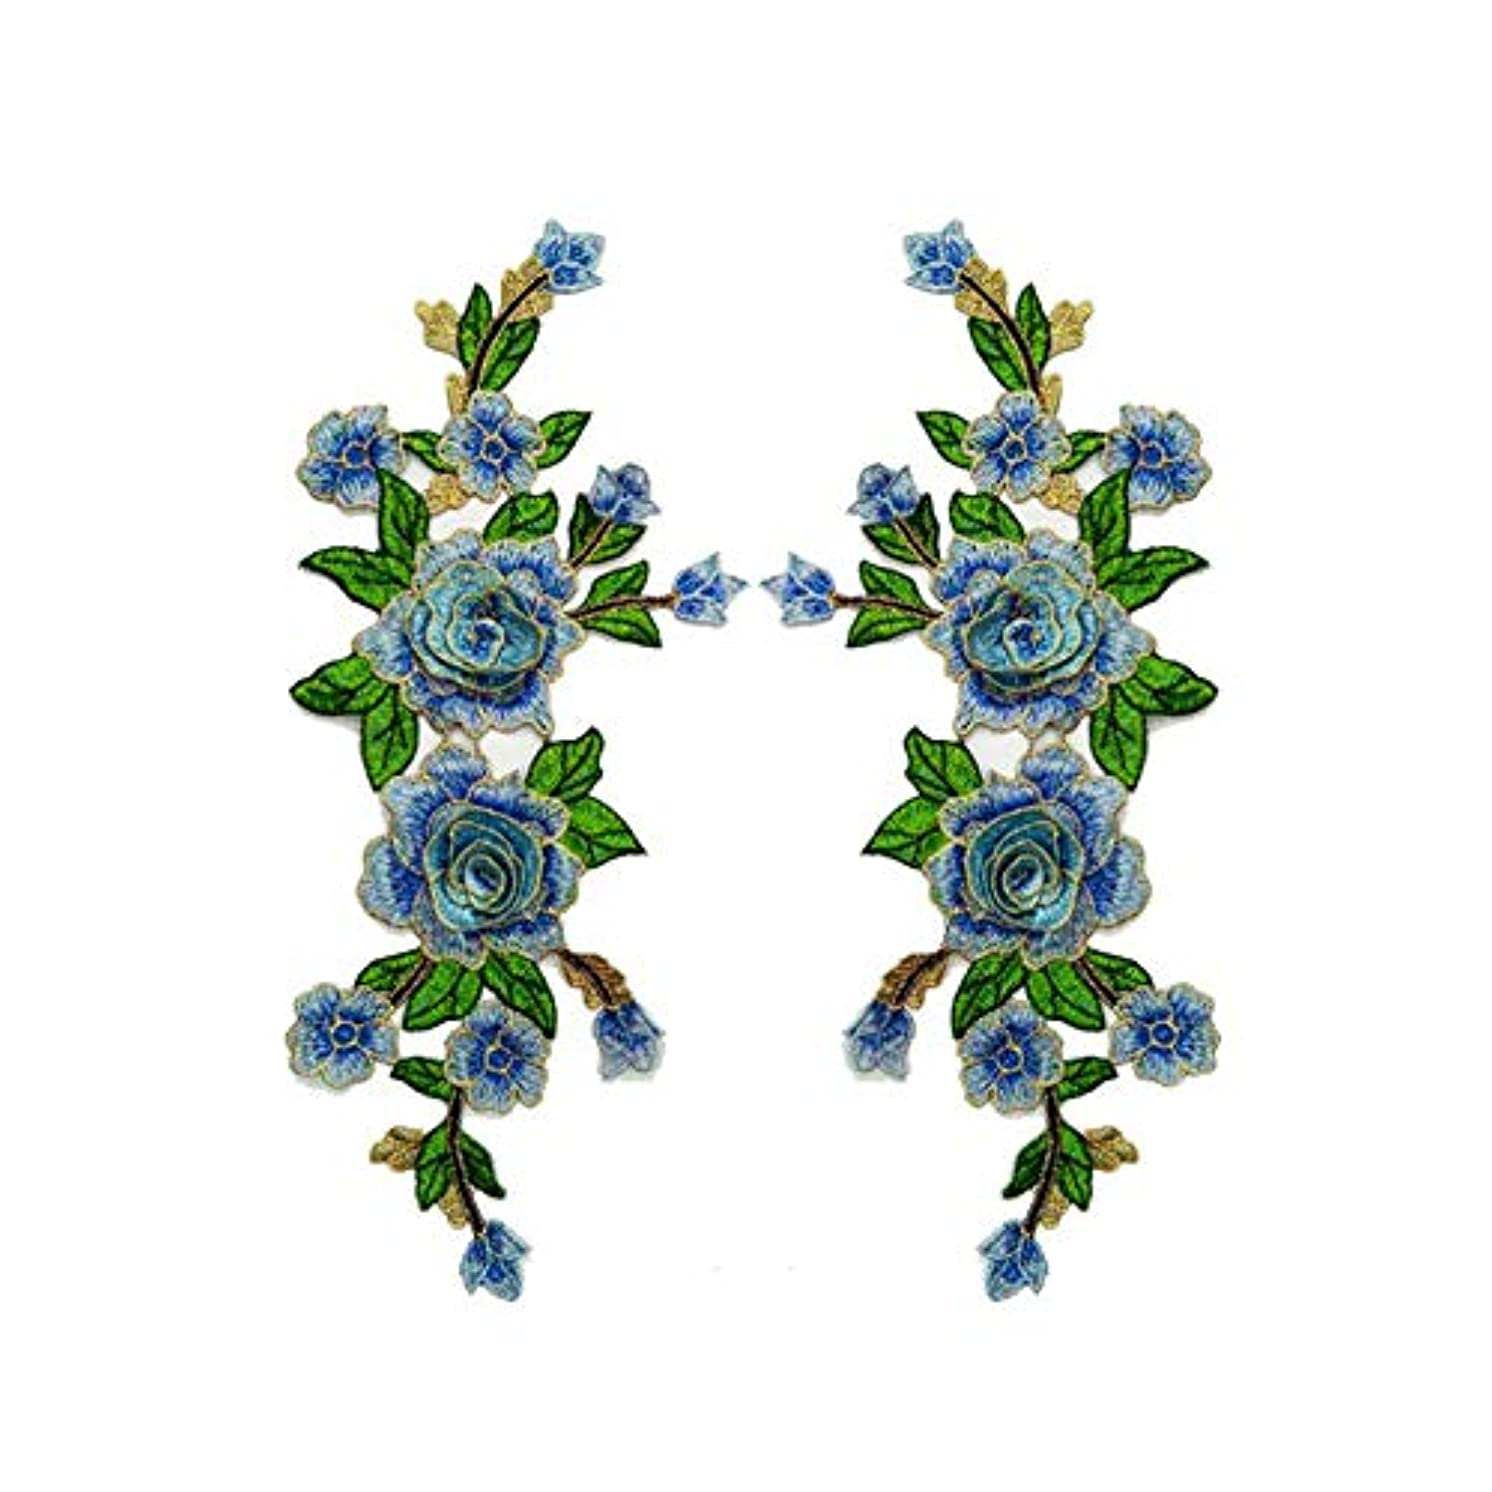 Fabric 3D Colorful Flower Lace Sewing Applique Patch Collar Applique DIY Craft Neckline Sewing Embroidery Patches Accessory for Cheongsam Clothes Dress 2 Pcs/lot (Blue)